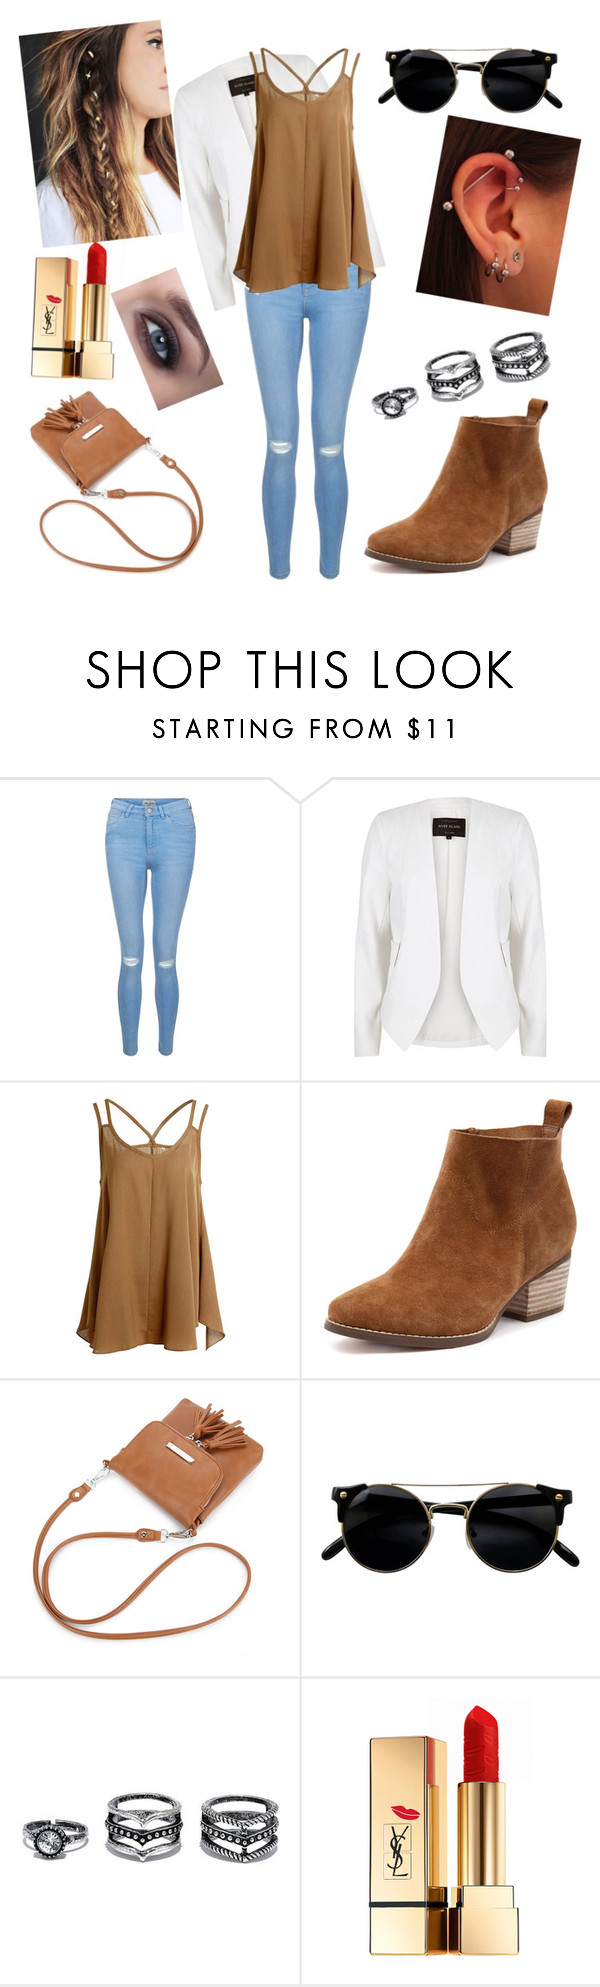 """""""jb"""" by nayawal on Polyvore featuring moda, New Look, River Island, Lulu*s y Yves Saint Laurent"""